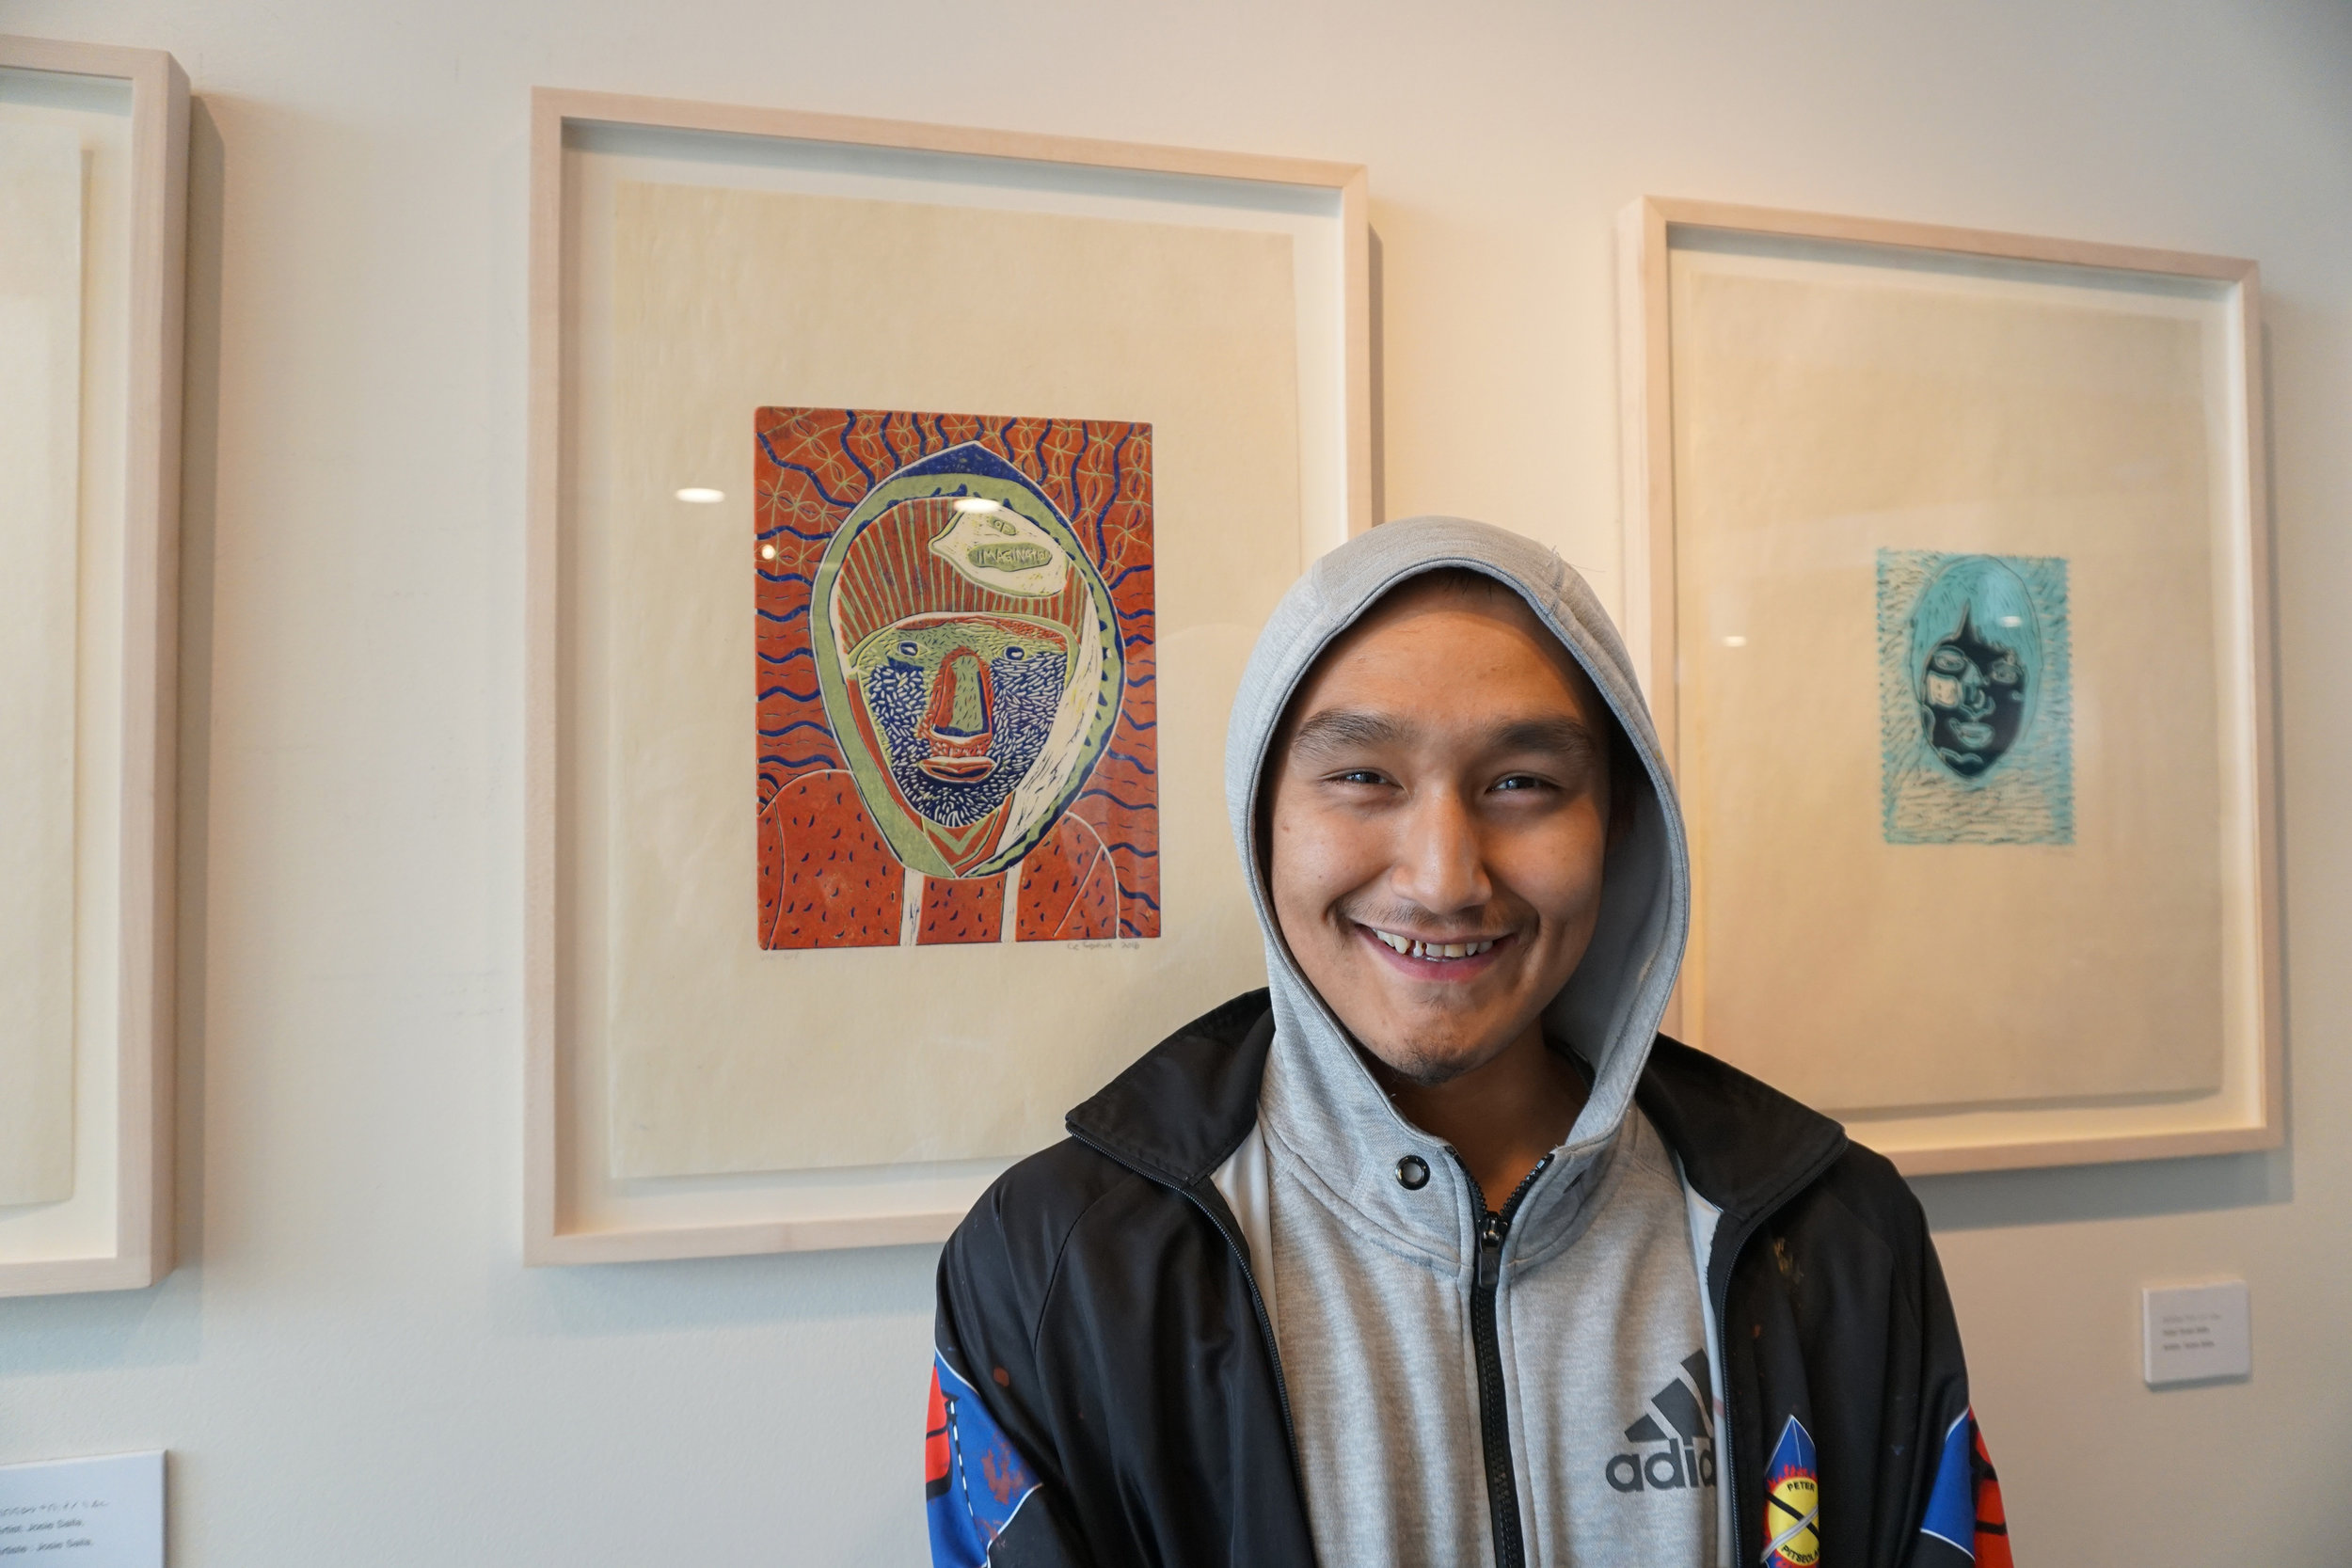 Cie Taqiasuk with his reductive linocut self-portrait